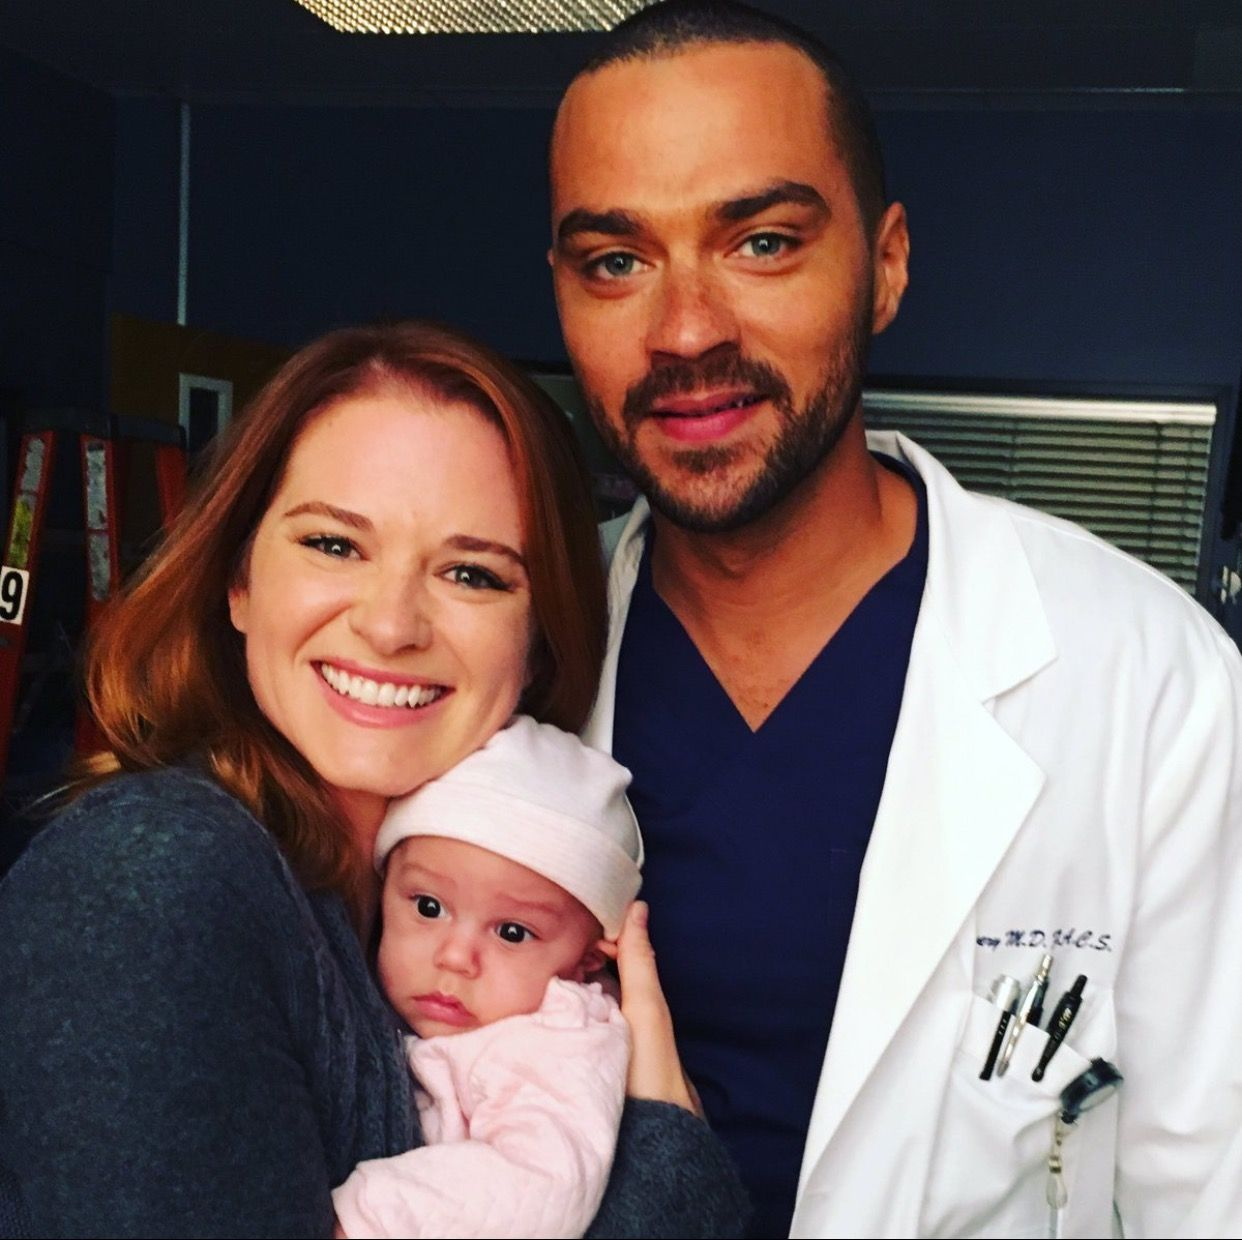 Avery family | Greys anatomy | Pinterest | Anatomía de grey ...